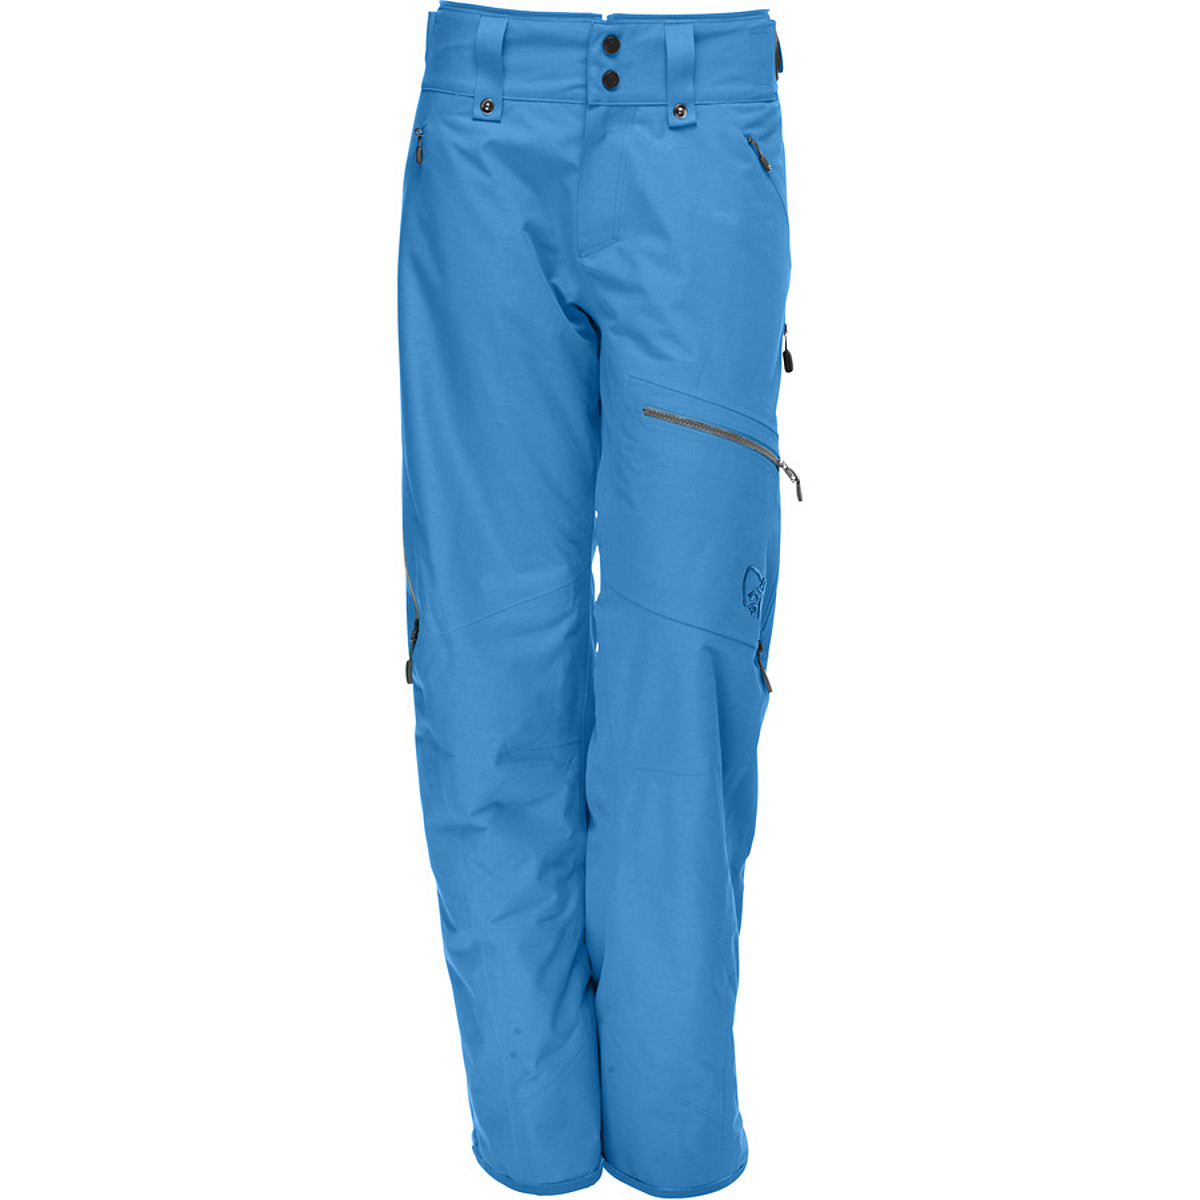 Norrona Roldal Gore-Tex Performance Shell Insulated Pant